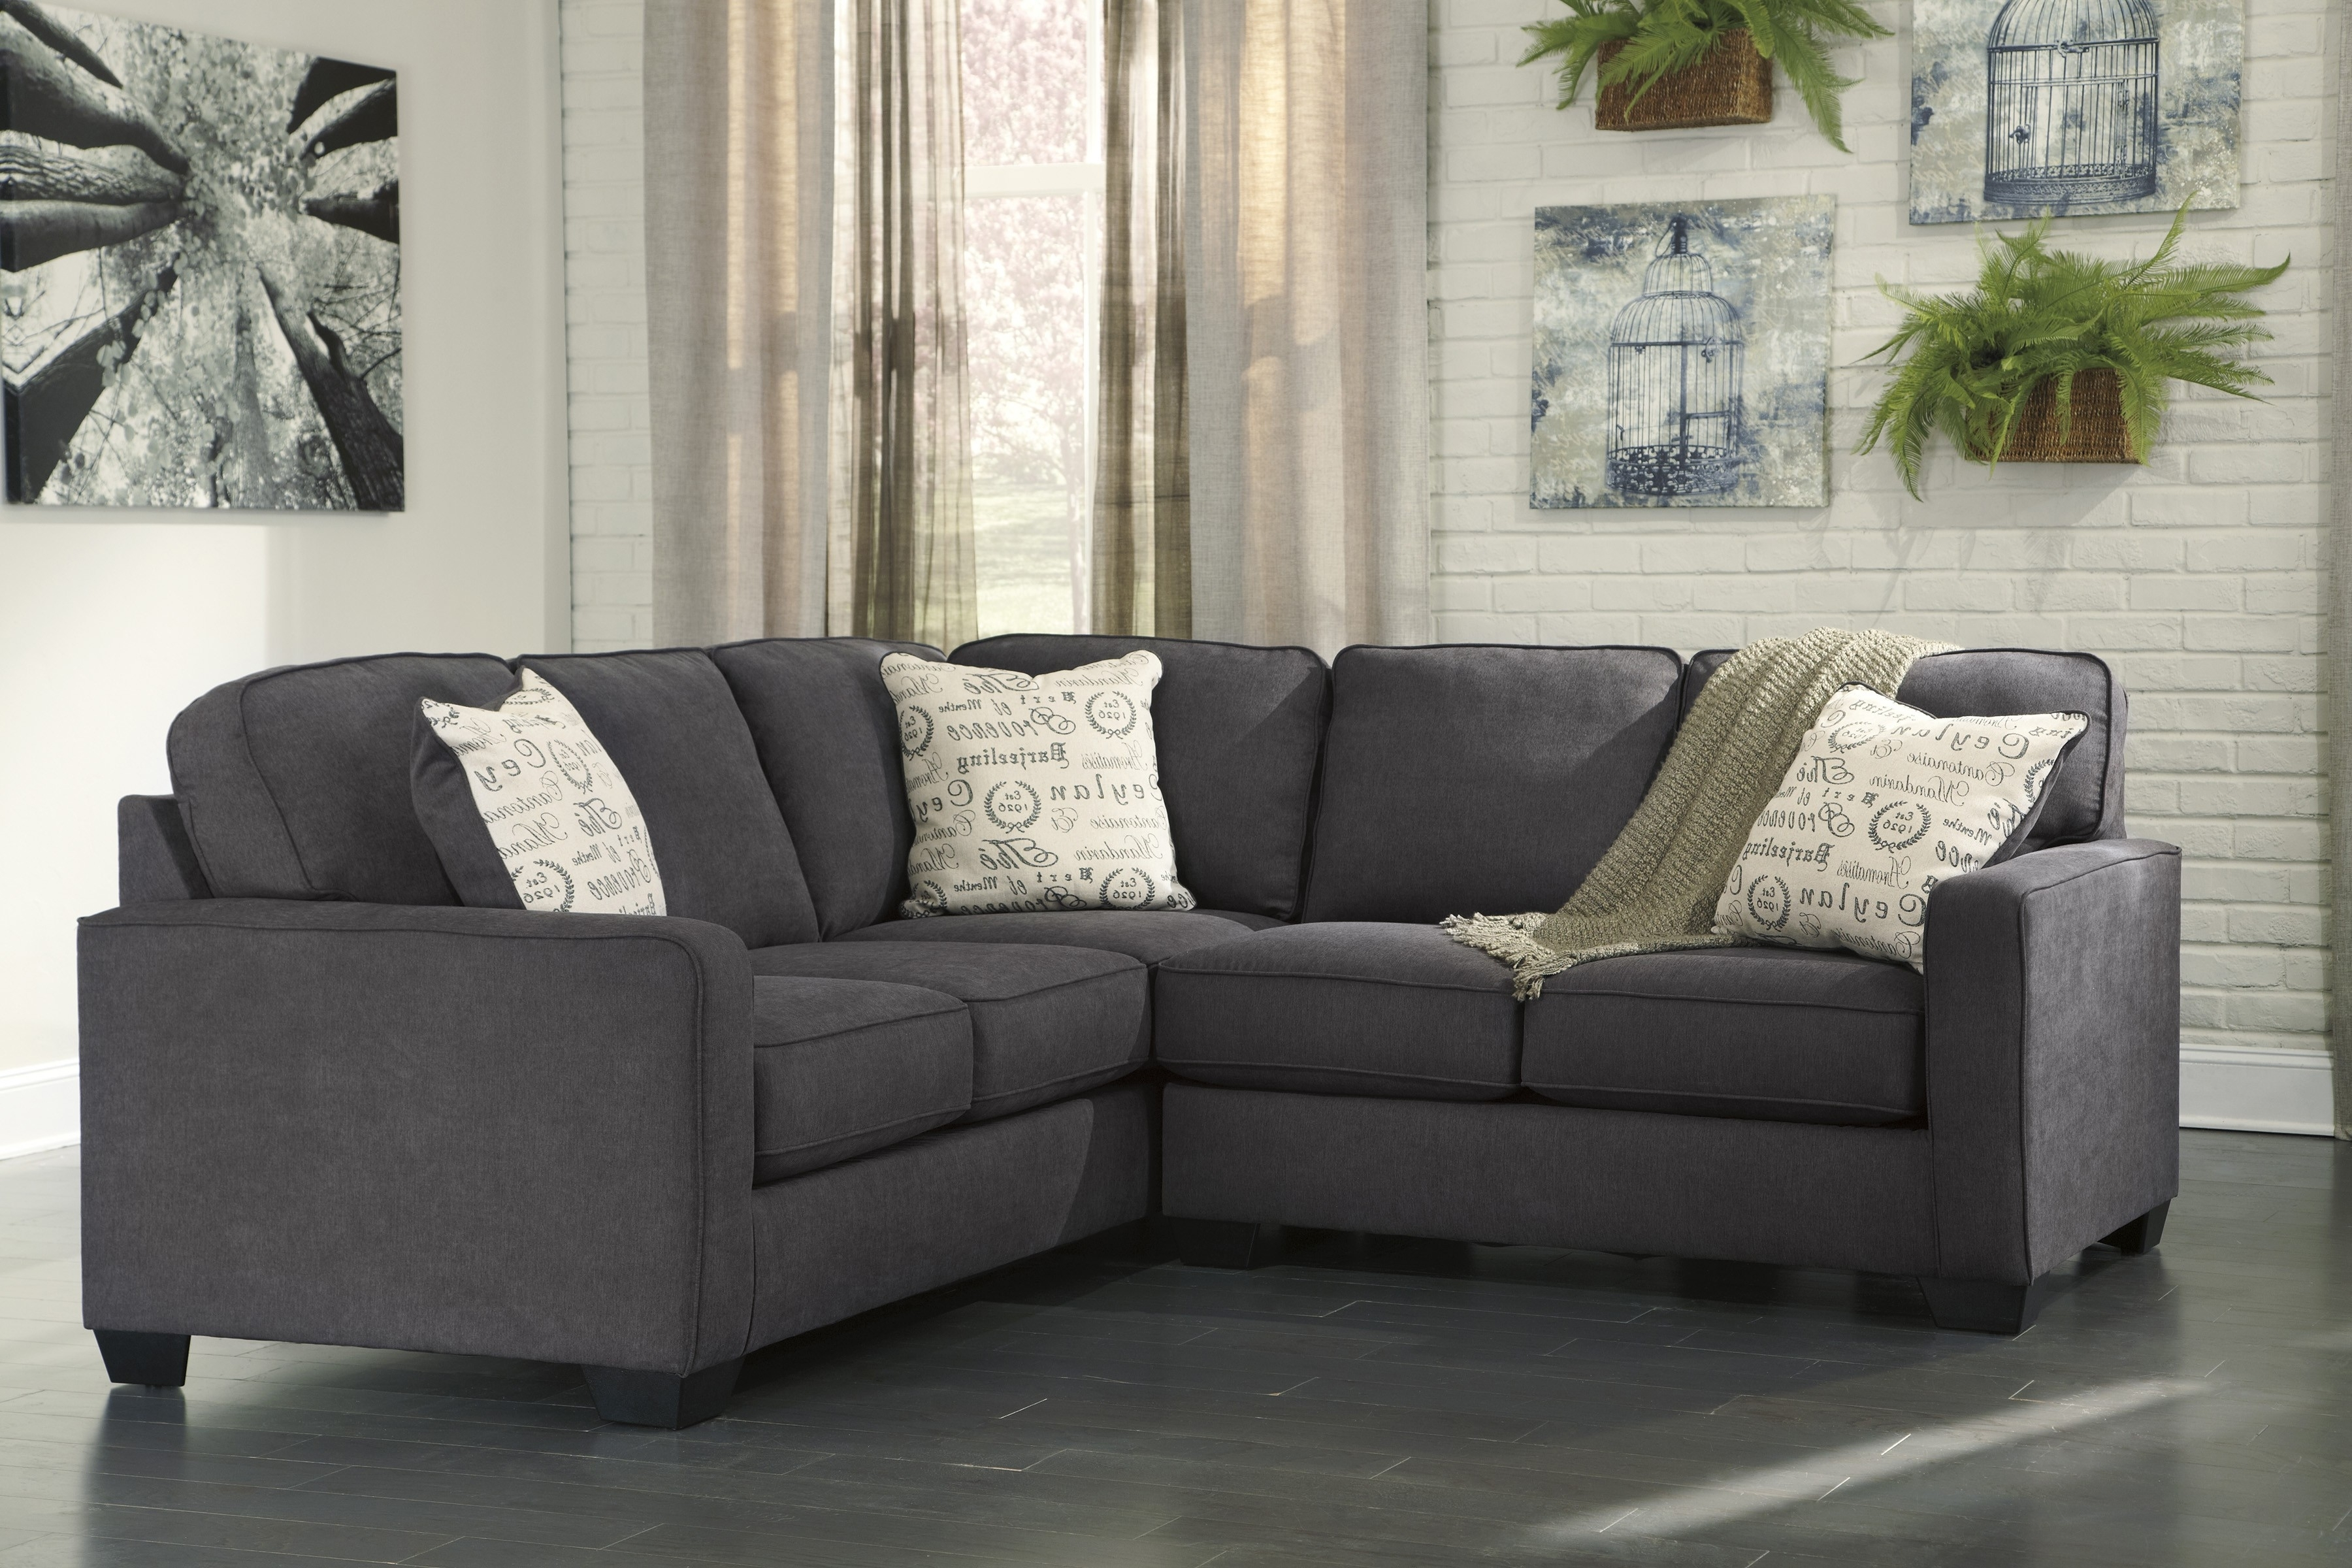 Alenya Charcoal Piece Sectional Sofa For Furnitureusa Raf Love Tures In Aspen 2 Piece Sleeper Sectionals With Laf Chaise (View 11 of 25)